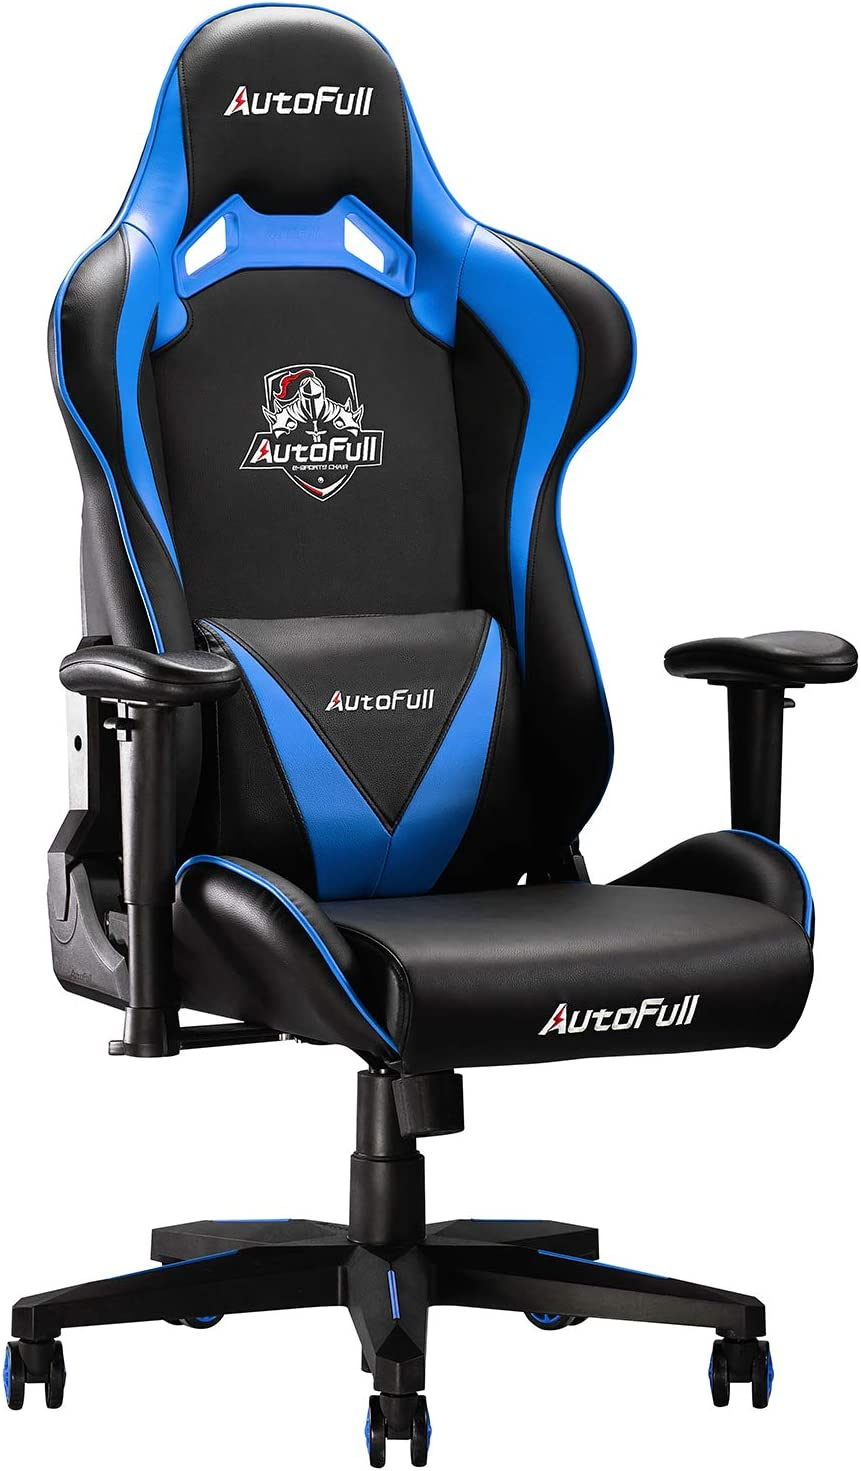 AutoFull Computer Gaming Chair